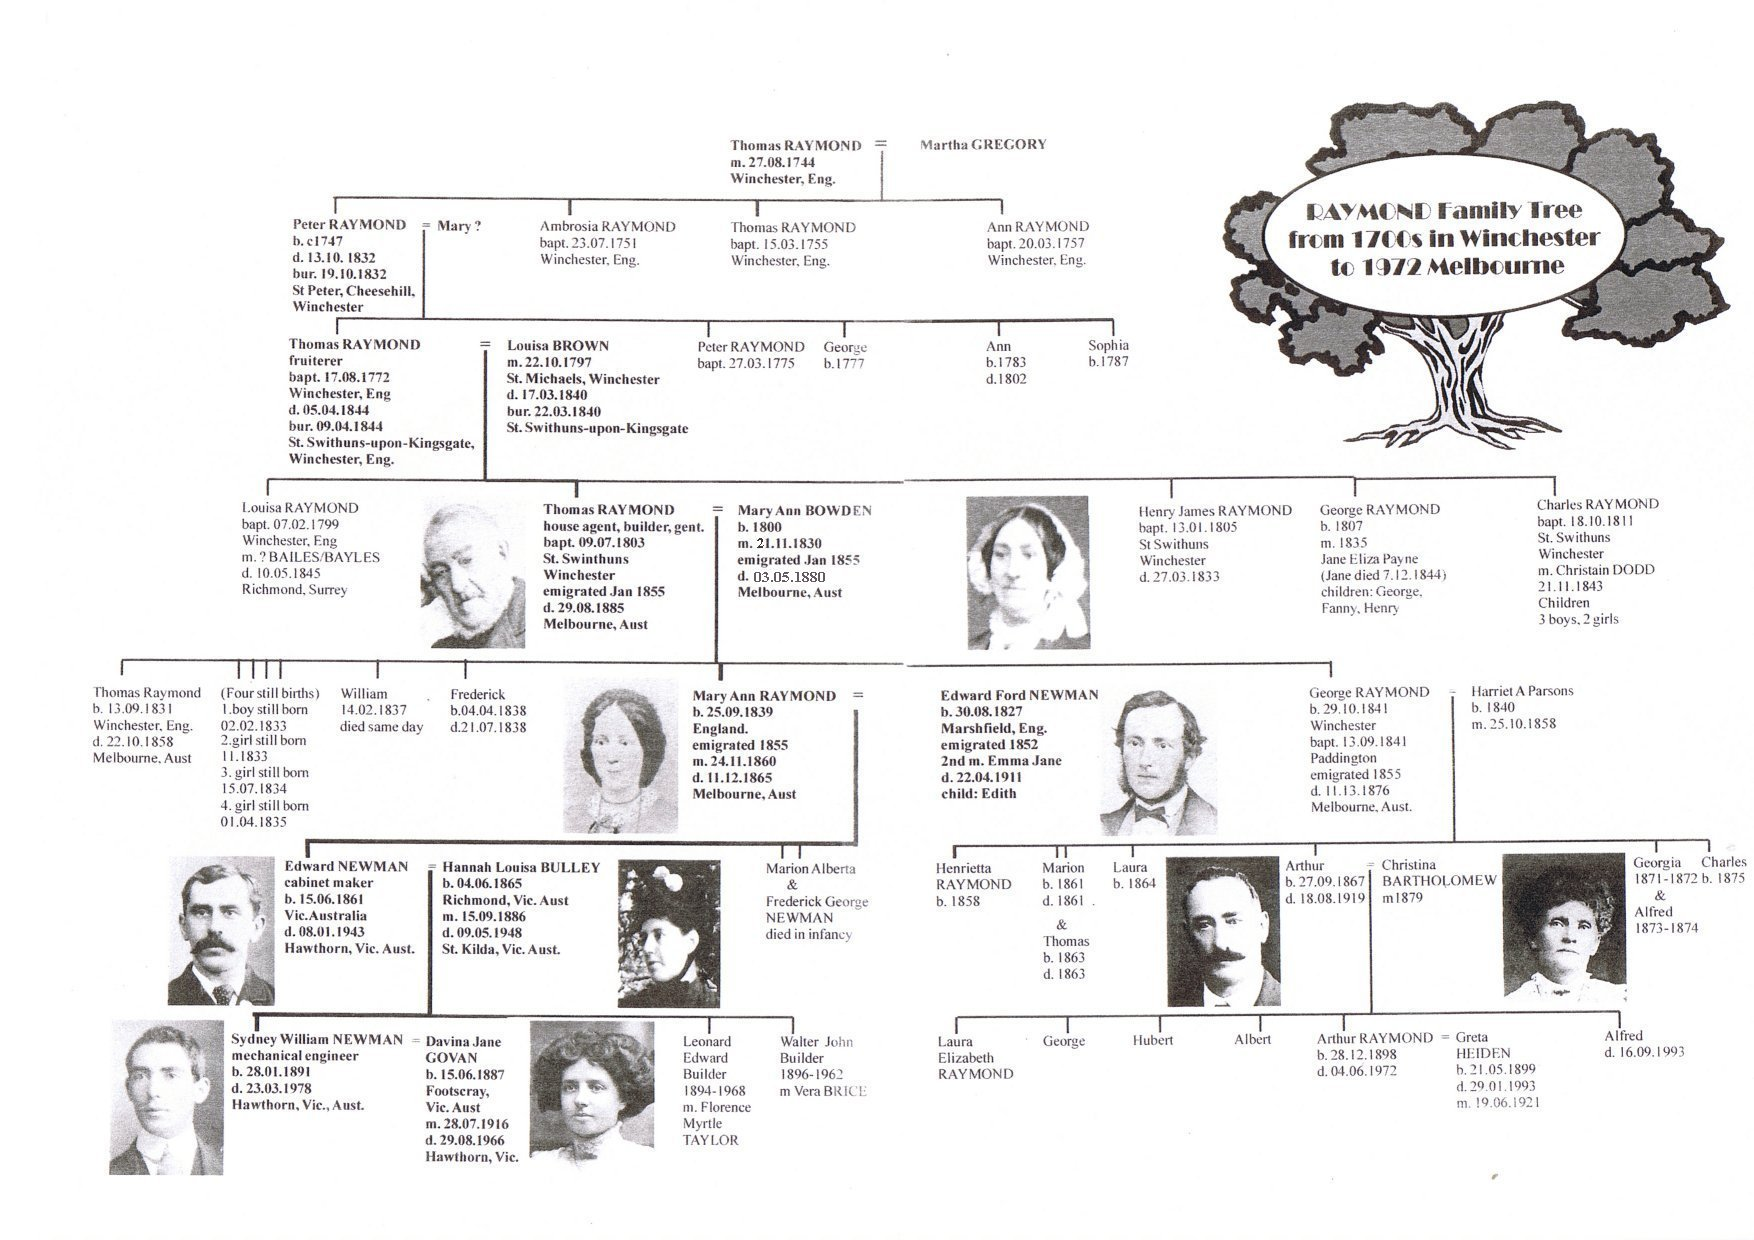 Click here to view the raymond family tree